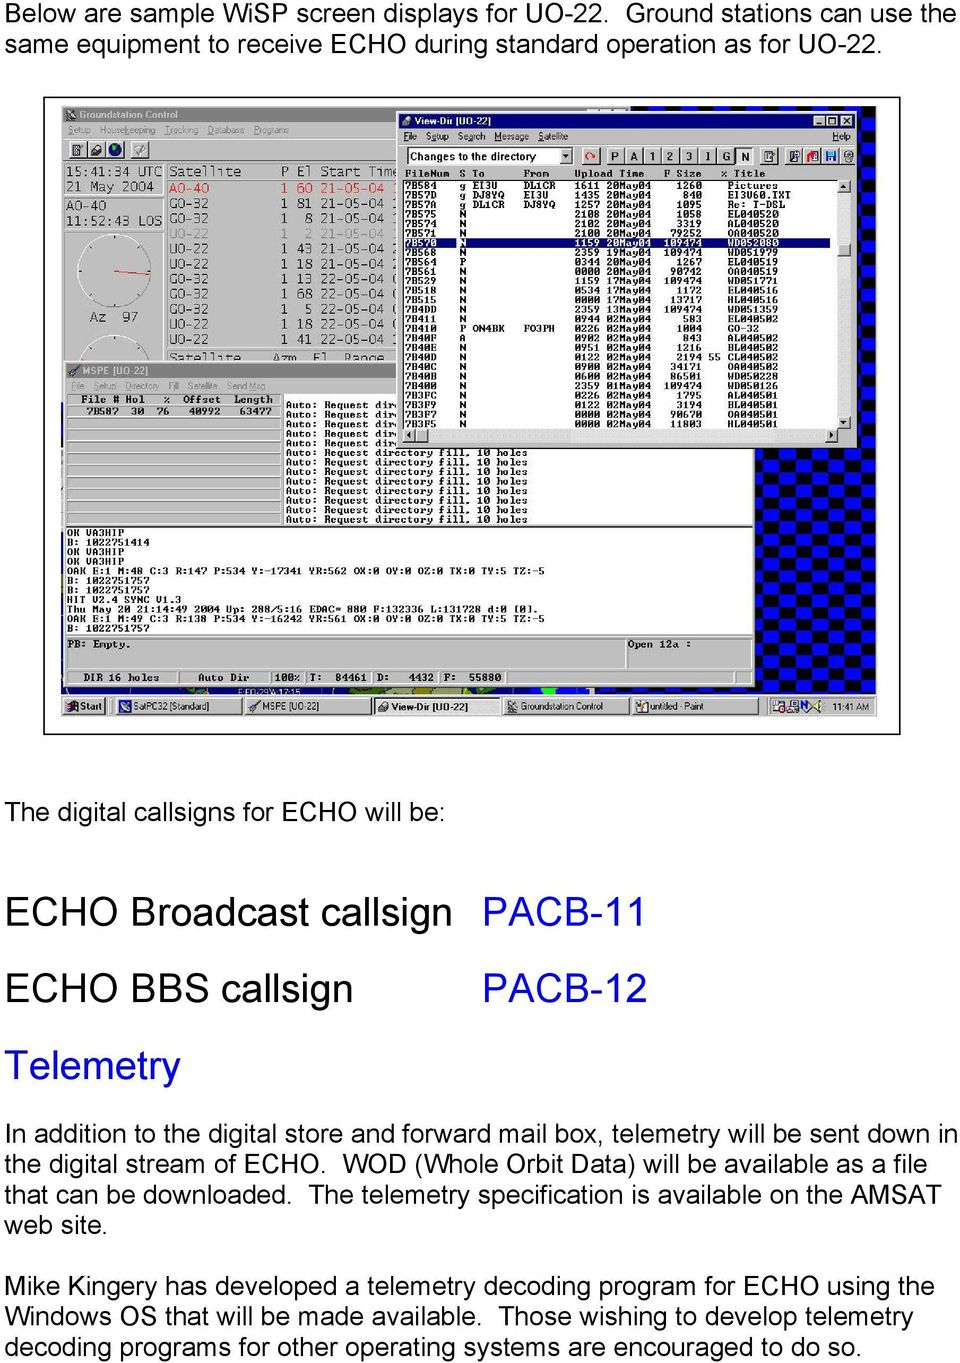 sent down in the digital stream of ECHO. WOD (Whole Orbit Data) will be available as a file that can be downloaded. The telemetry specification is available on the AMSAT web site.